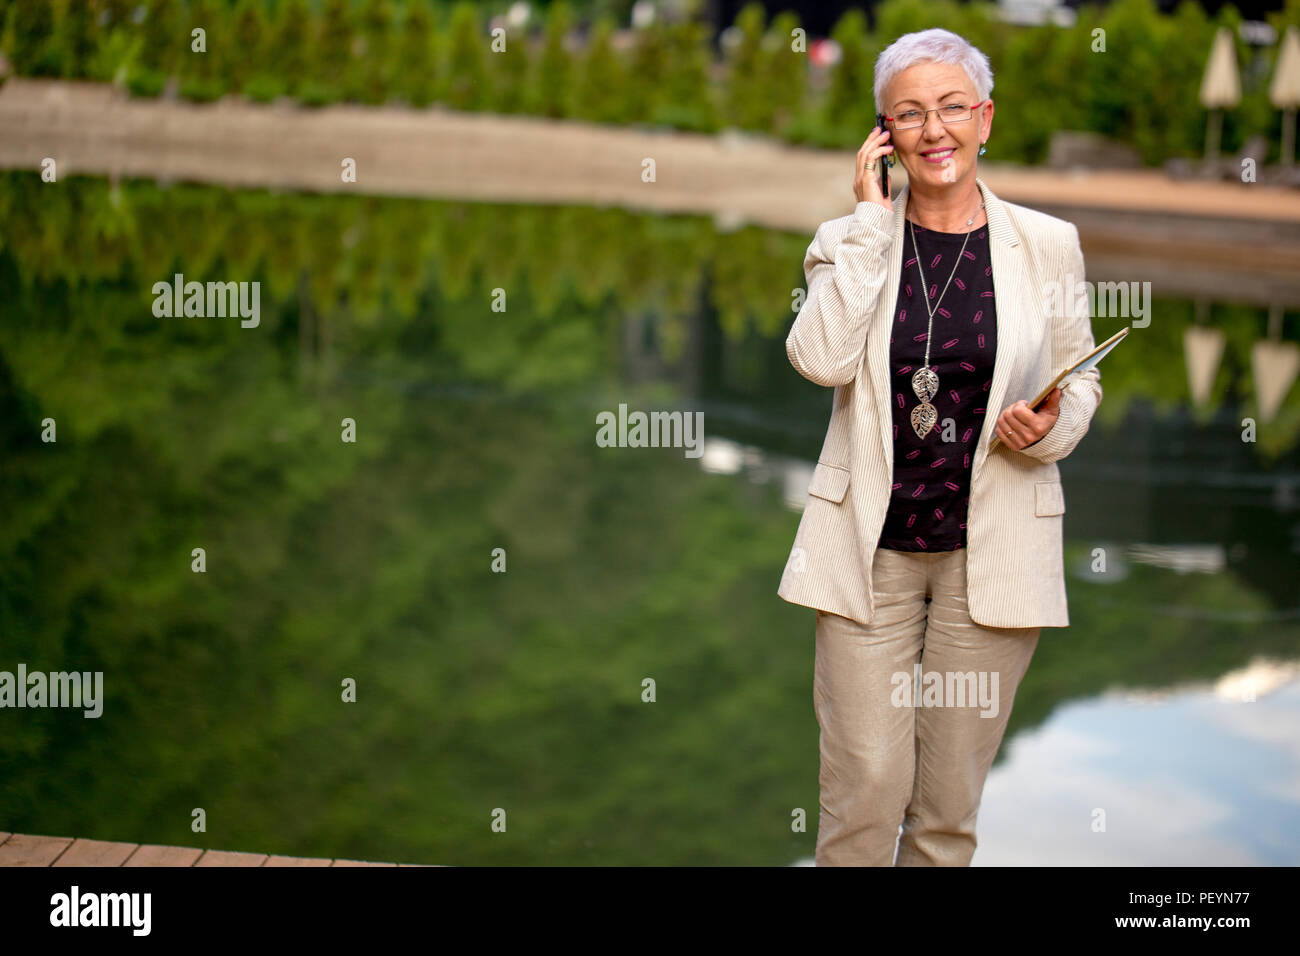 a mature tour guide is taking with holidaymakers on the phone outdoors.permissive temporary duty - Stock Image